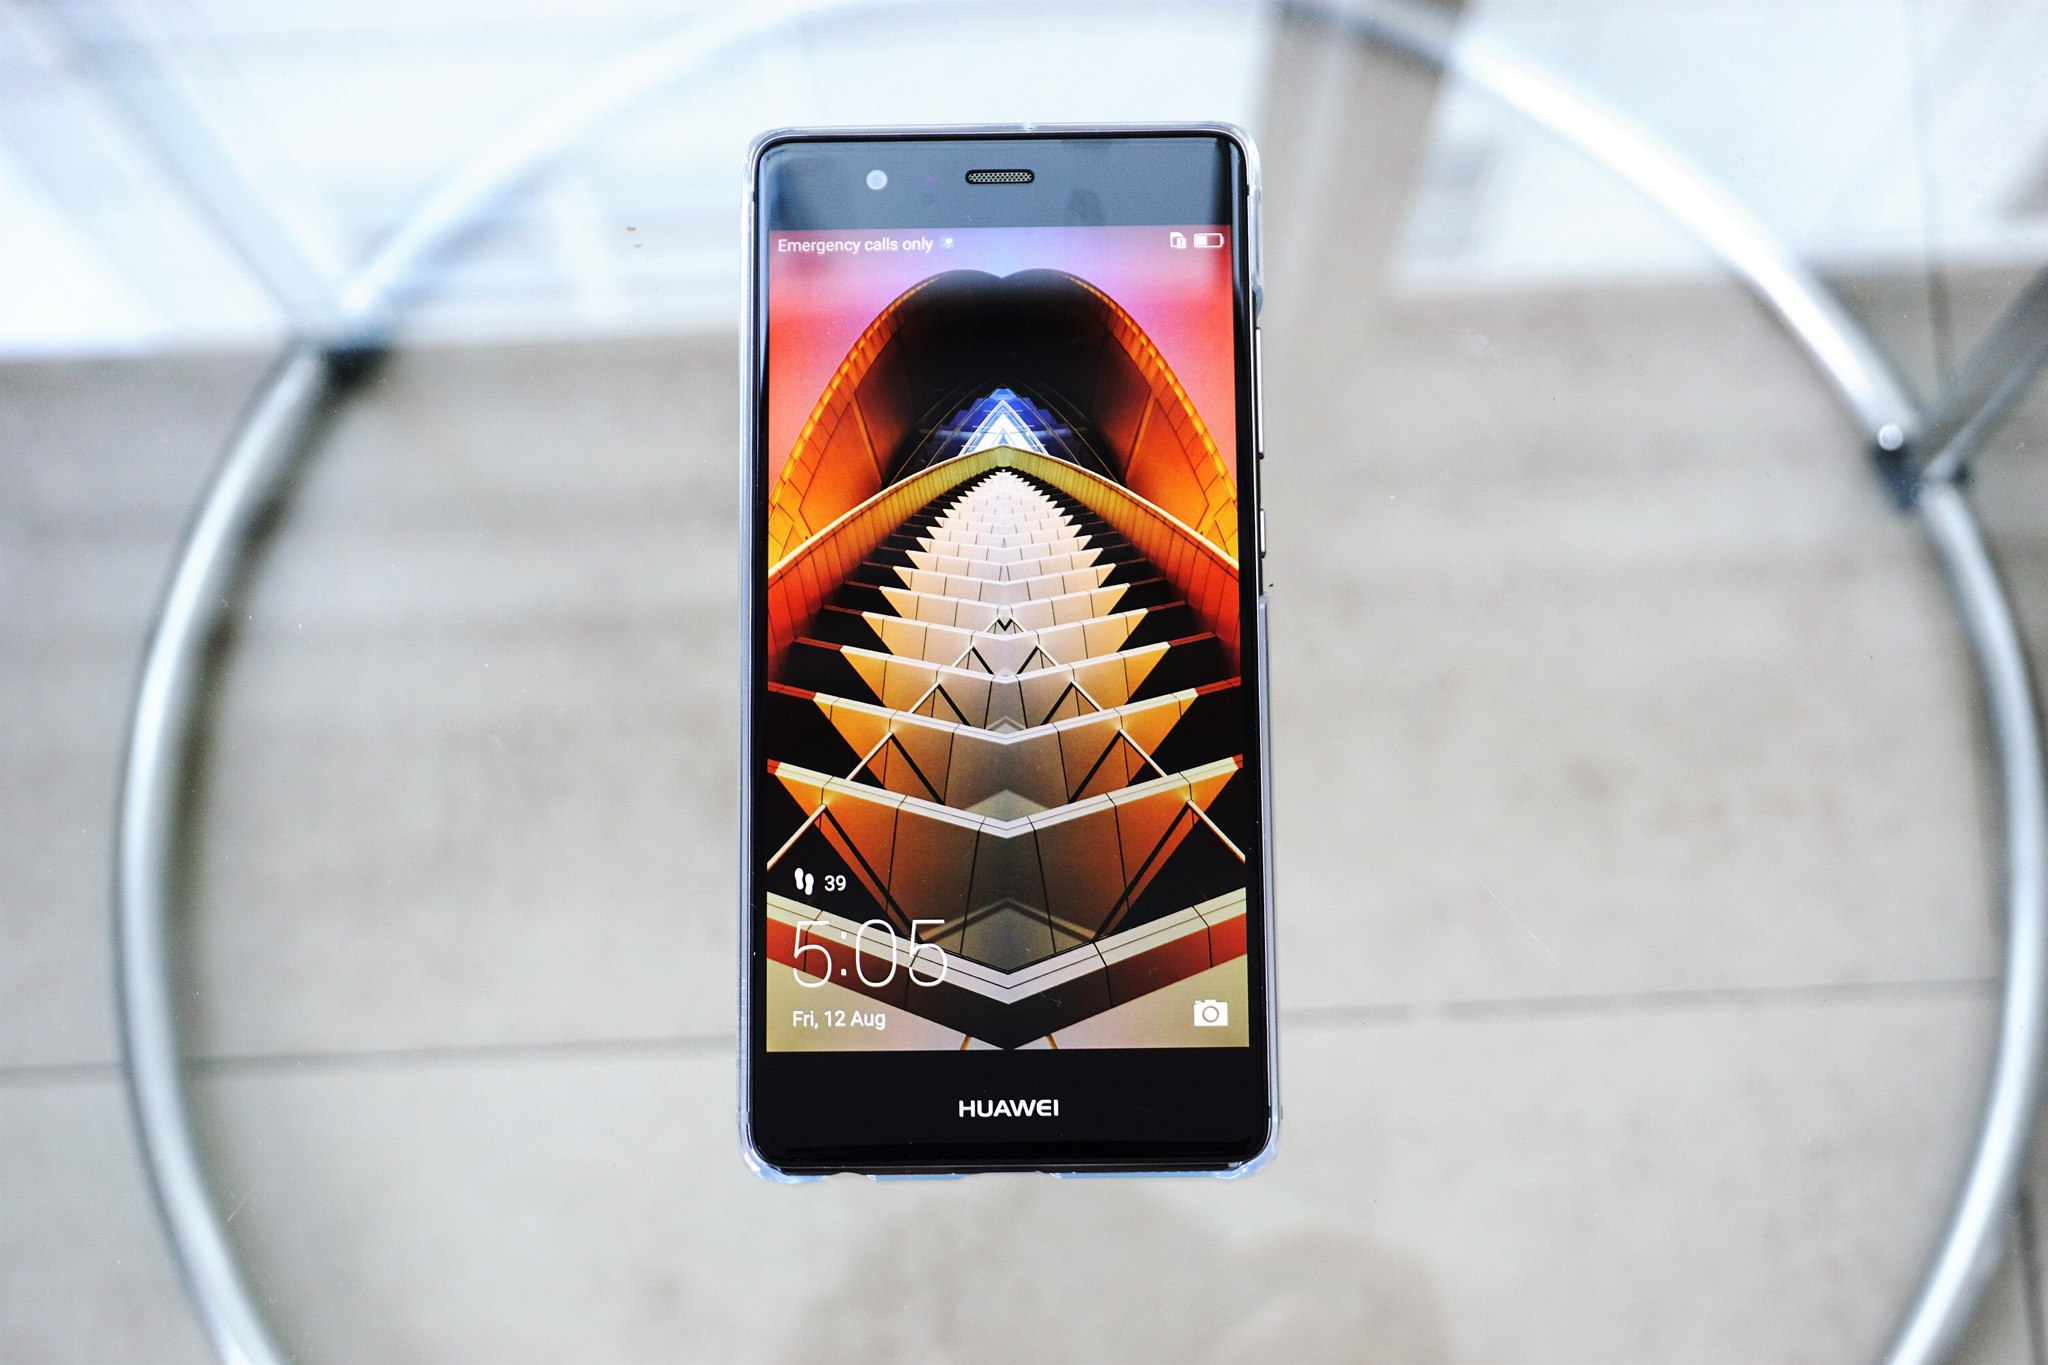 Huawei P9 Vibrant Display